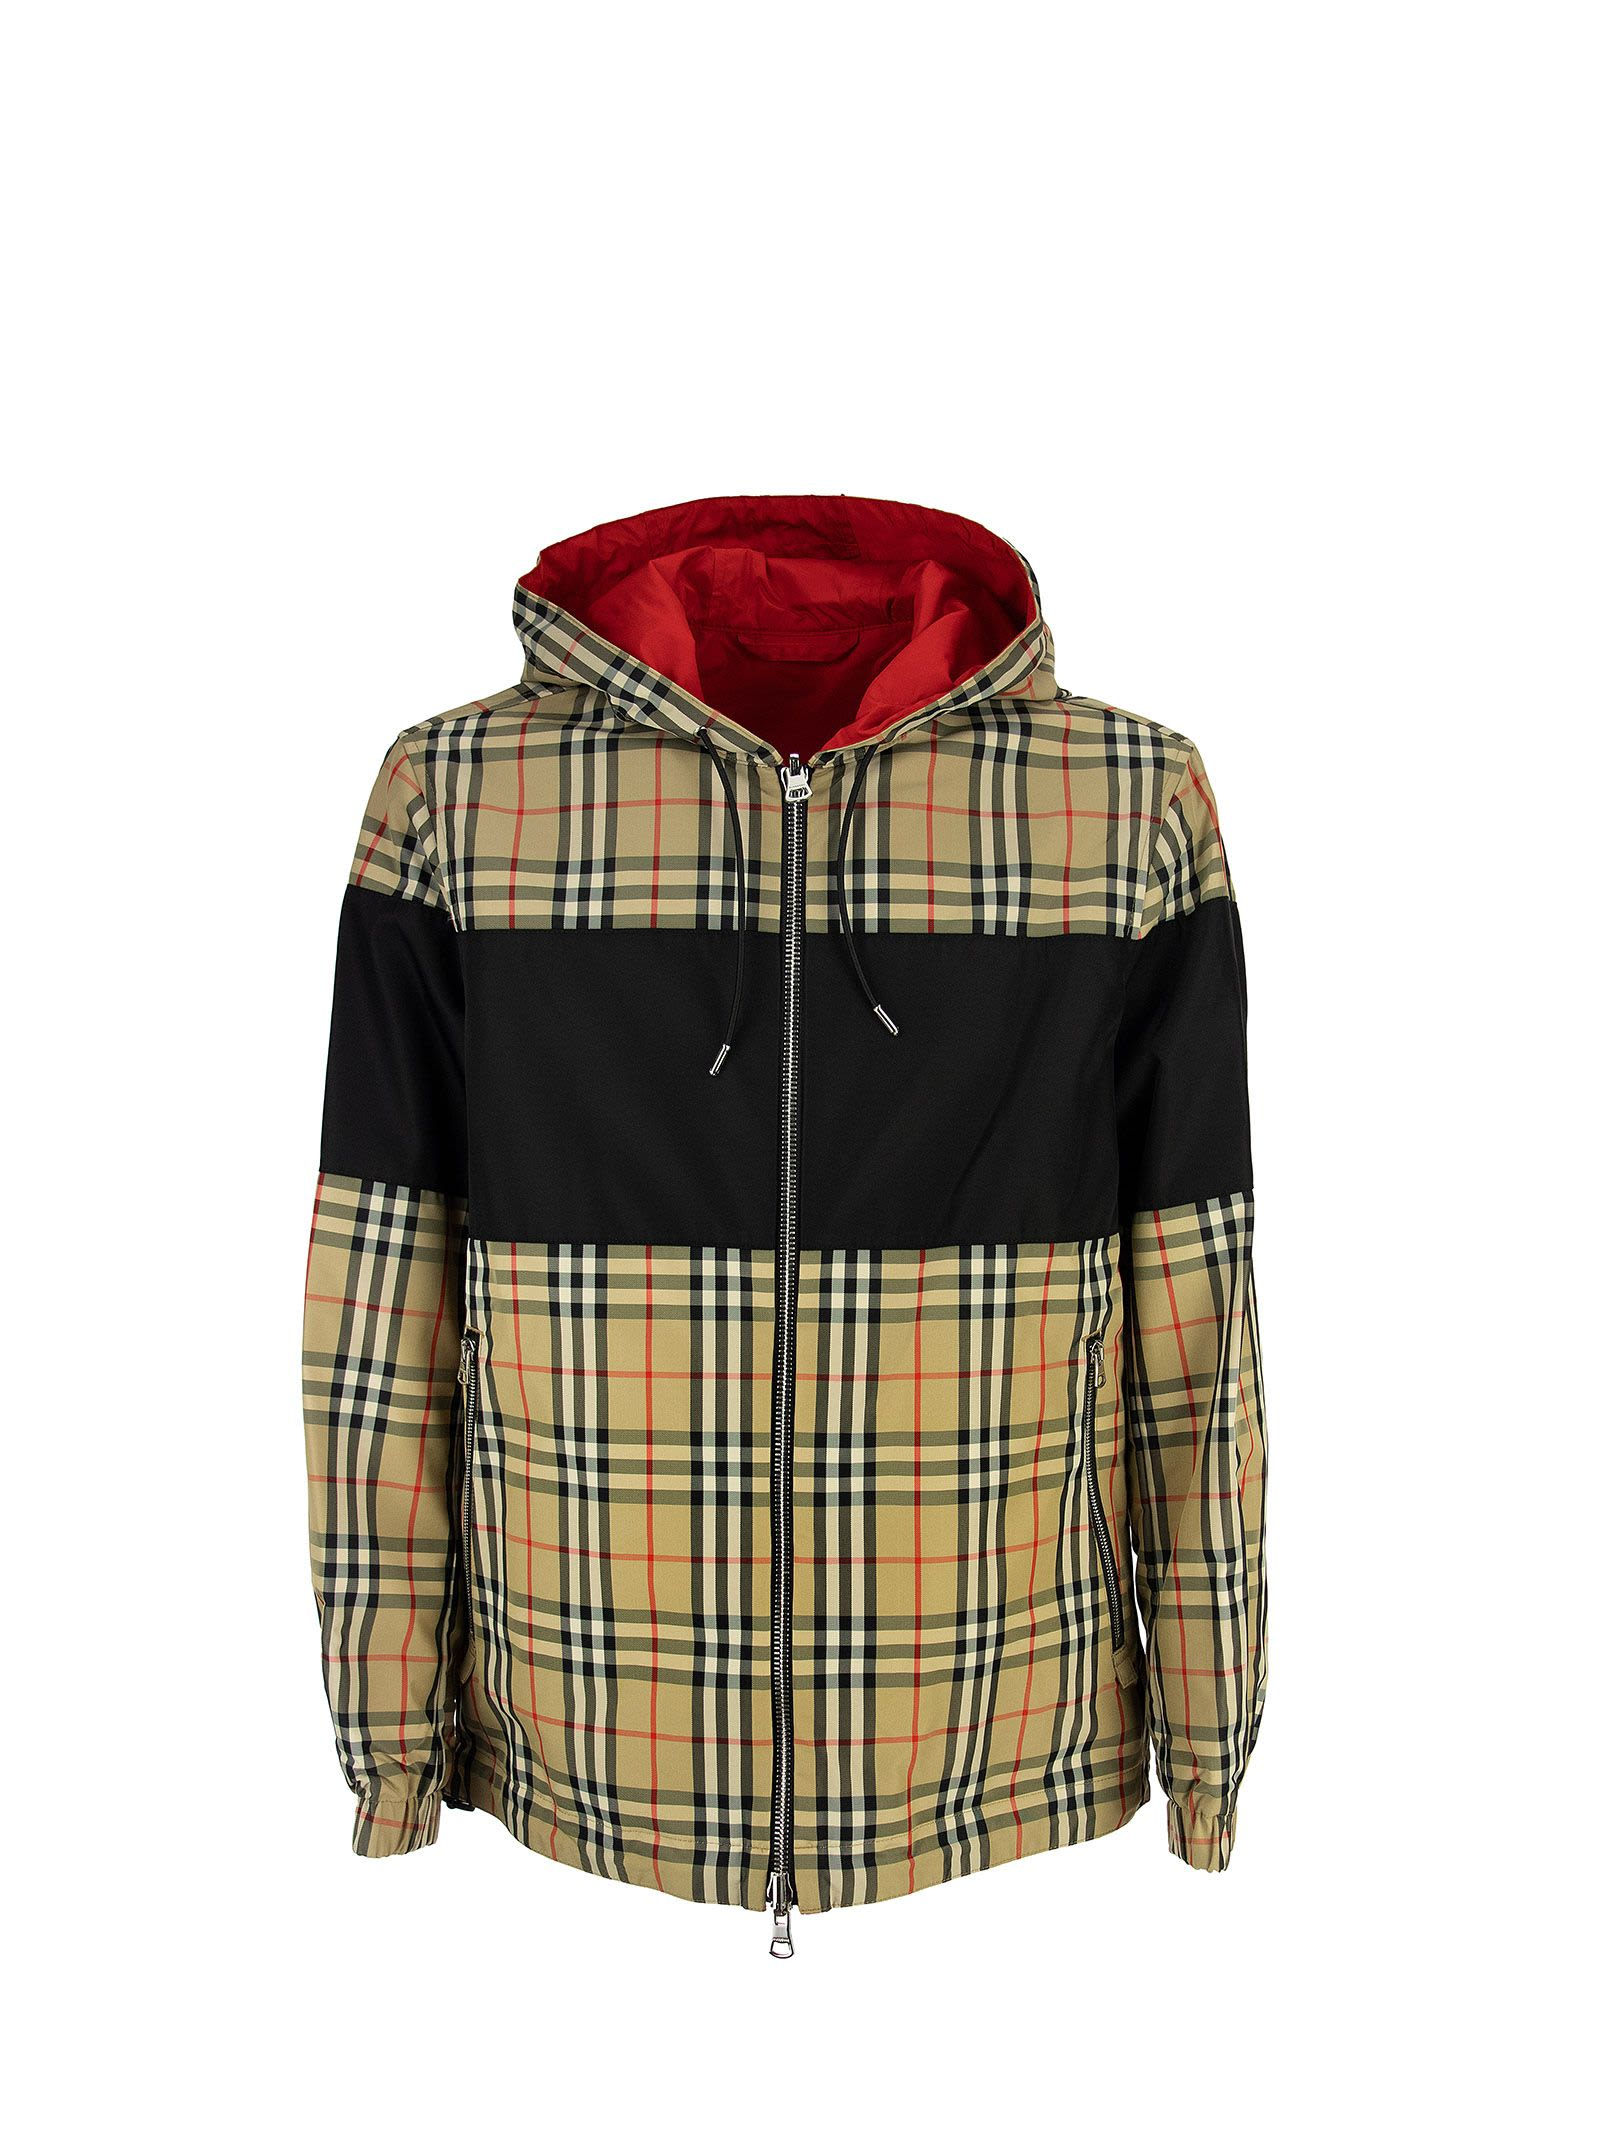 Burberry CONTRAST PANEL CHECK COTTON REVERSIBLE JACKET SHROPSHIRE